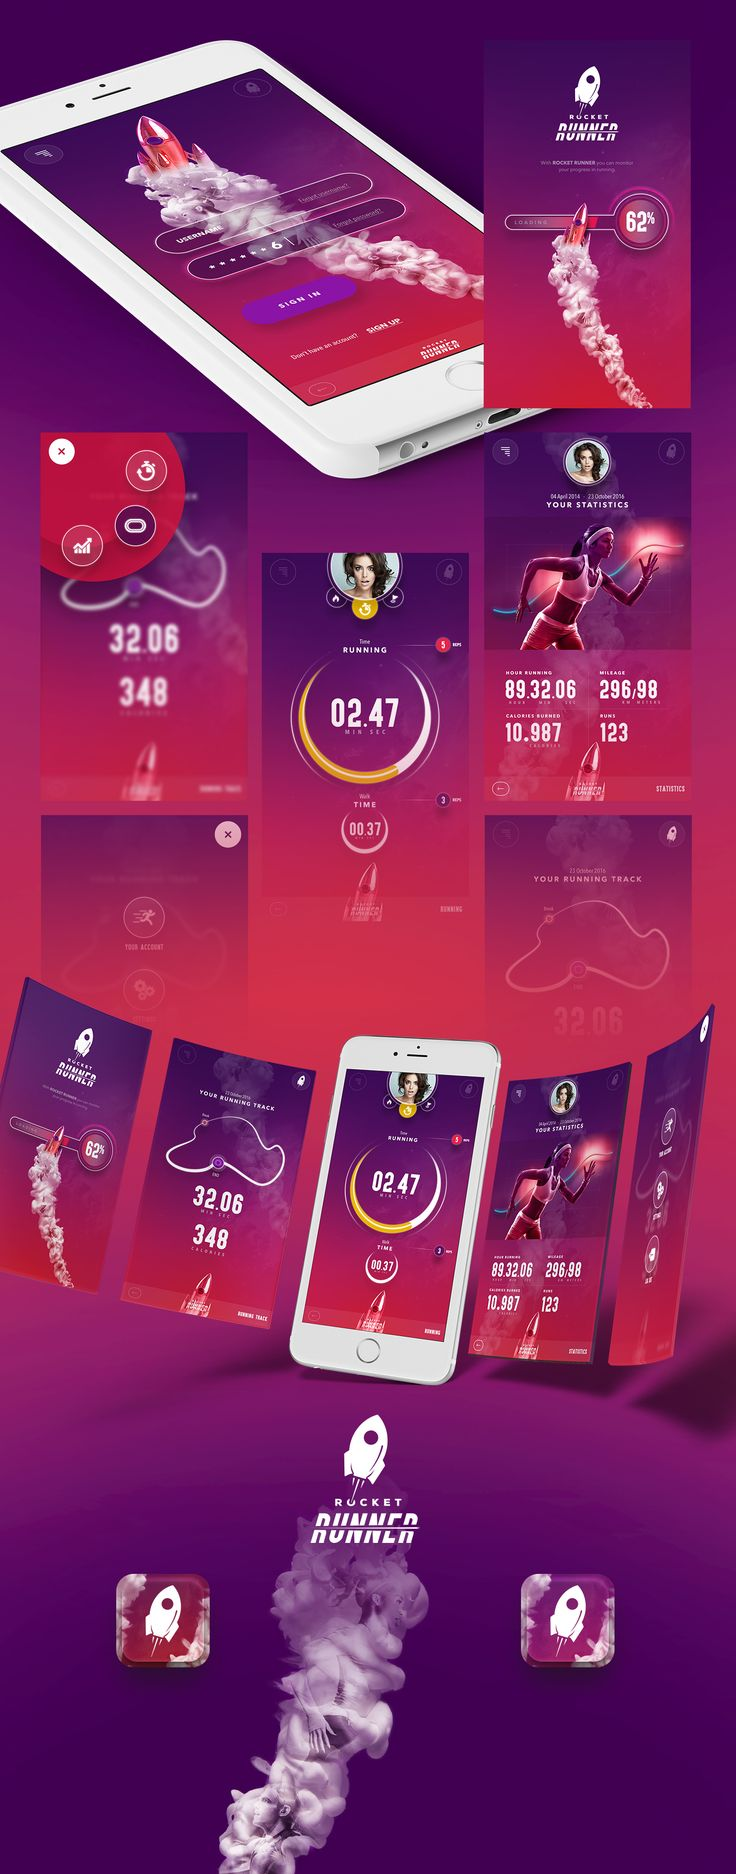 Rocket Runner app on Behance